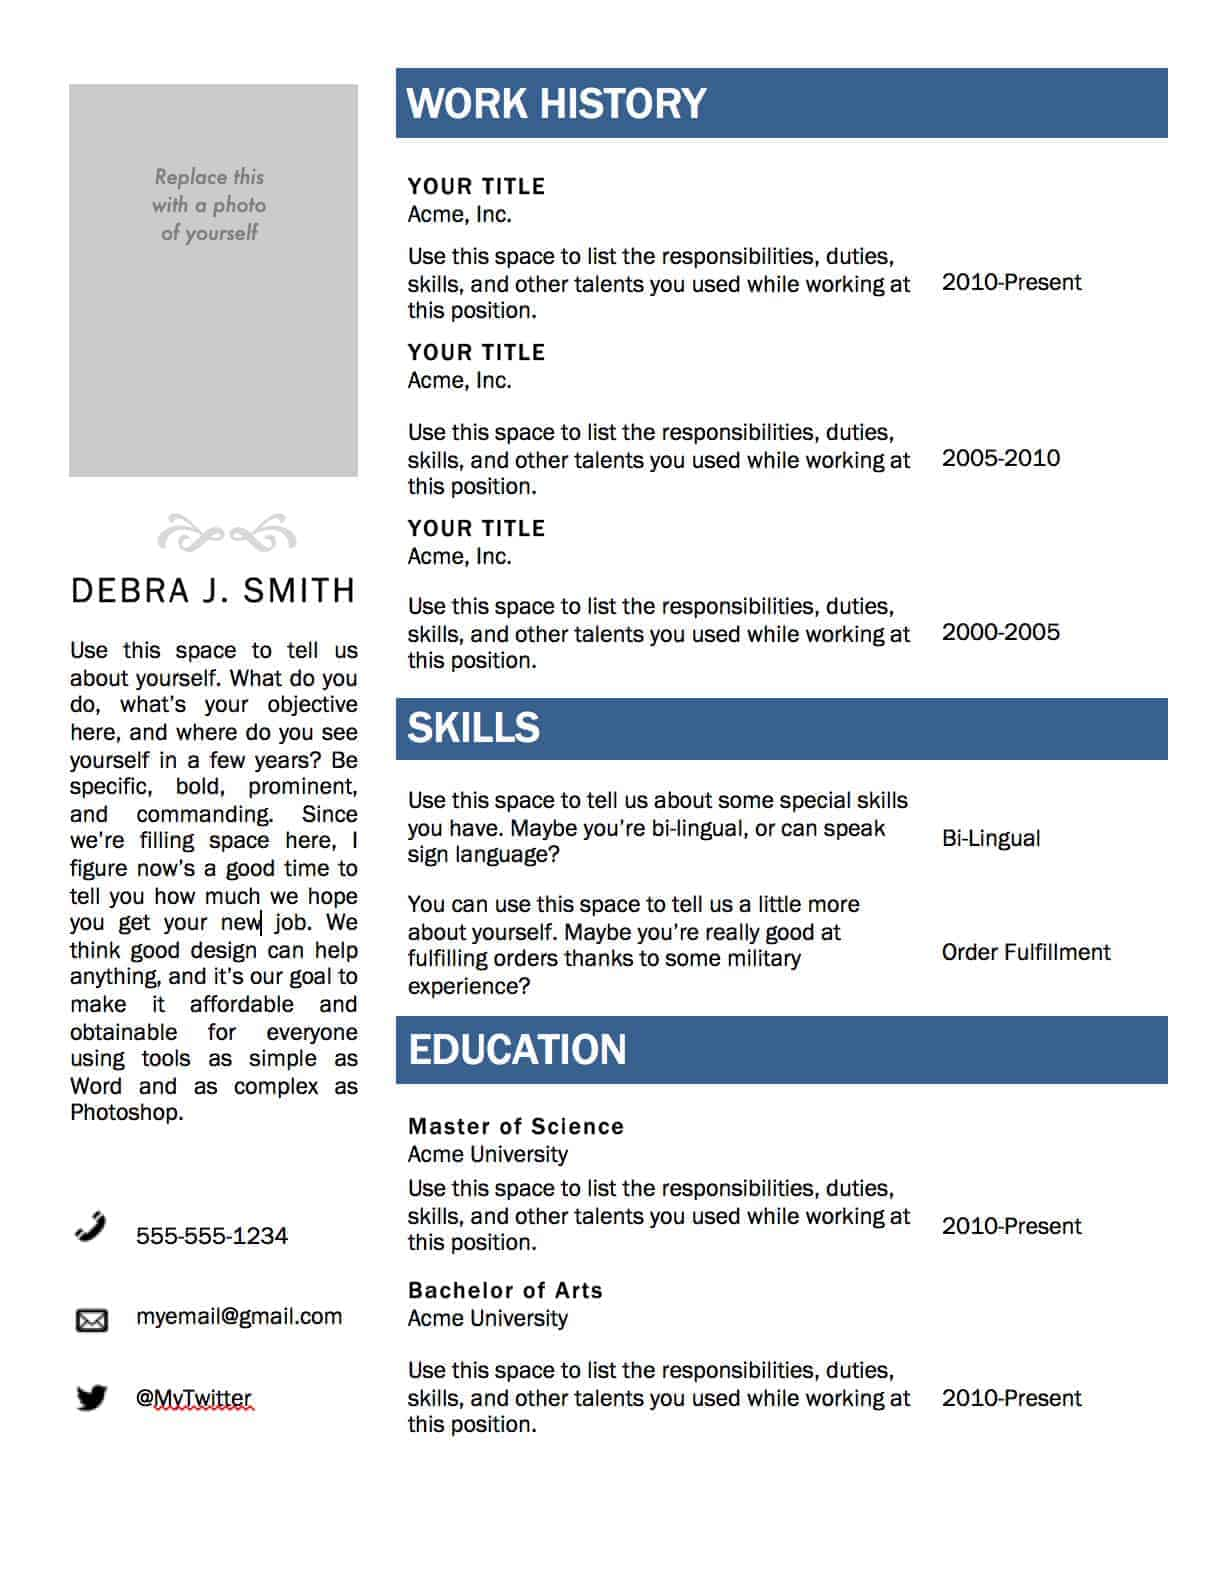 free microsoft word resume template affordable marketing and web design in indianapolis Resume Resume Without Microsoft Word